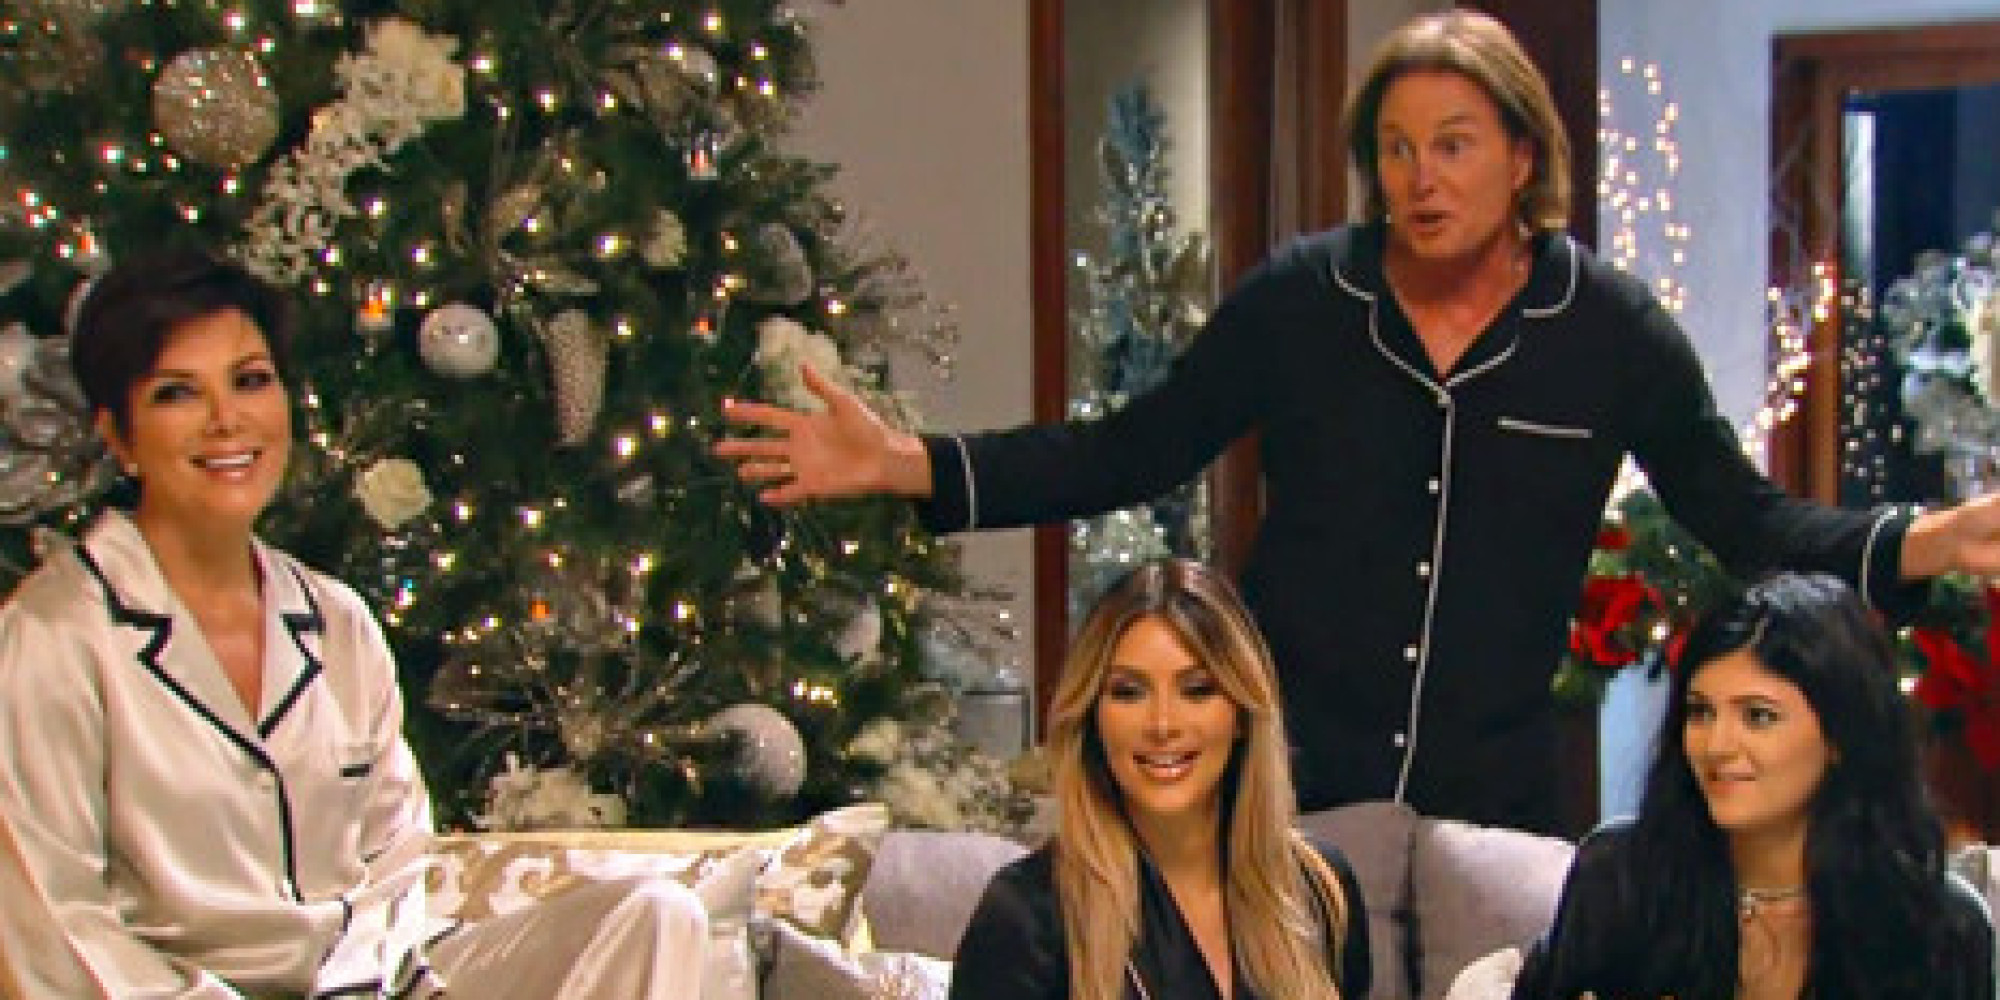 Kardashian Christmas Card 2013 |